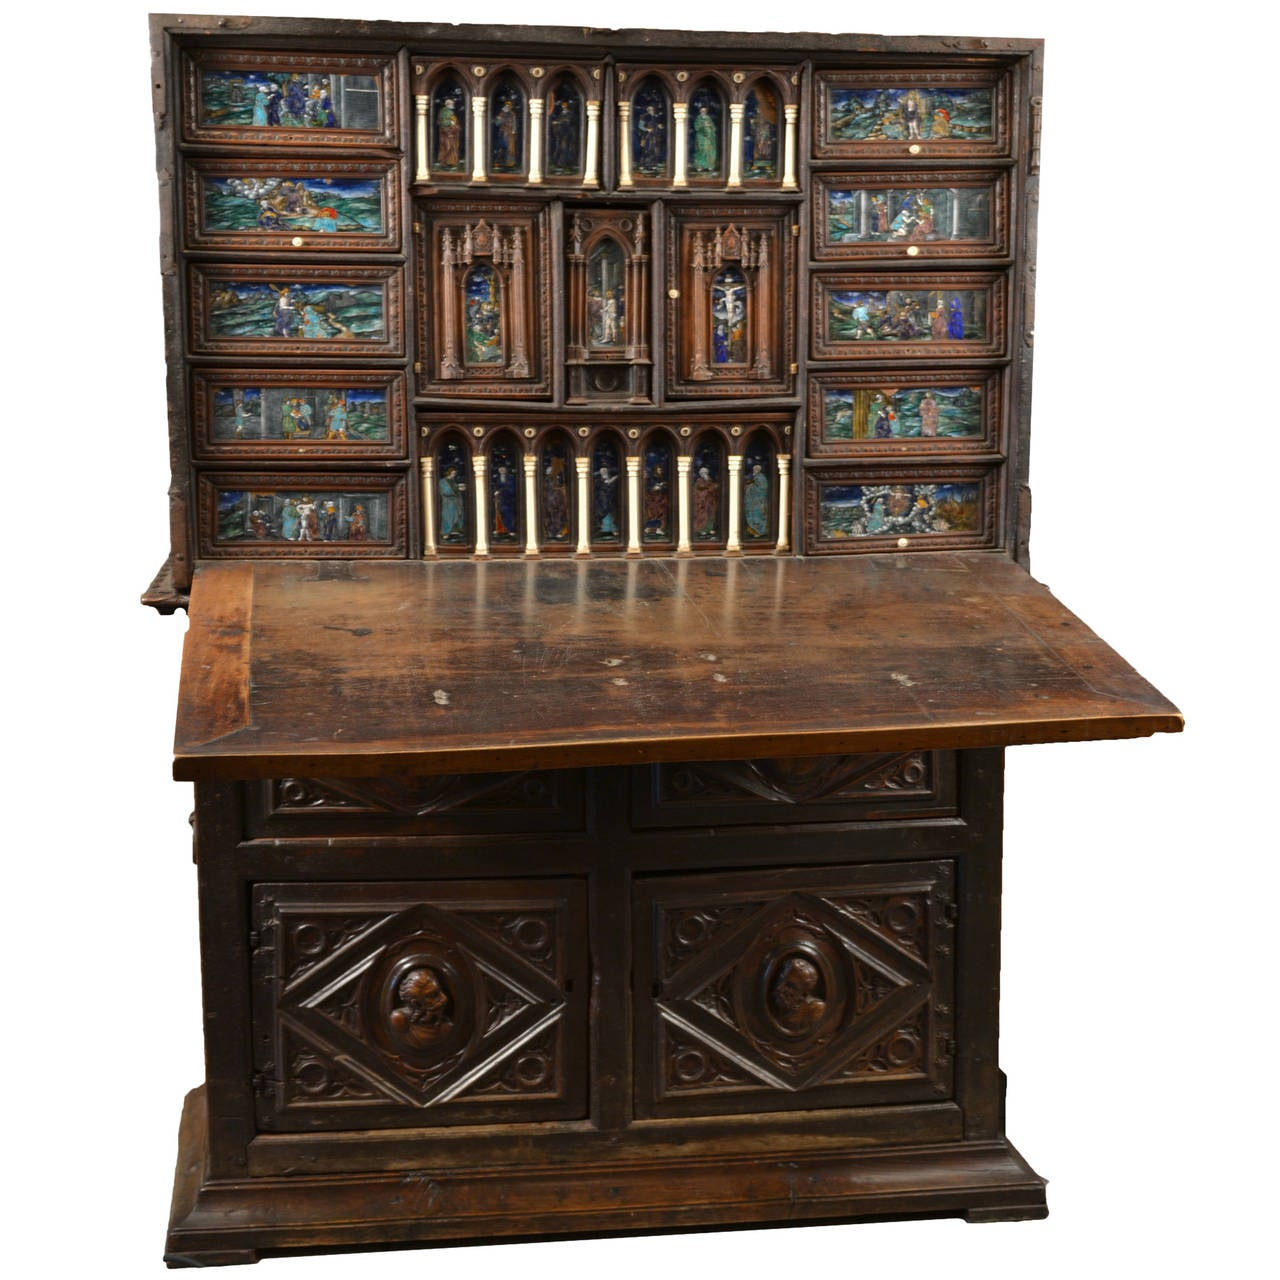 16th century spanish vargue o cabinet with limoges enamel for Furniture in spanish